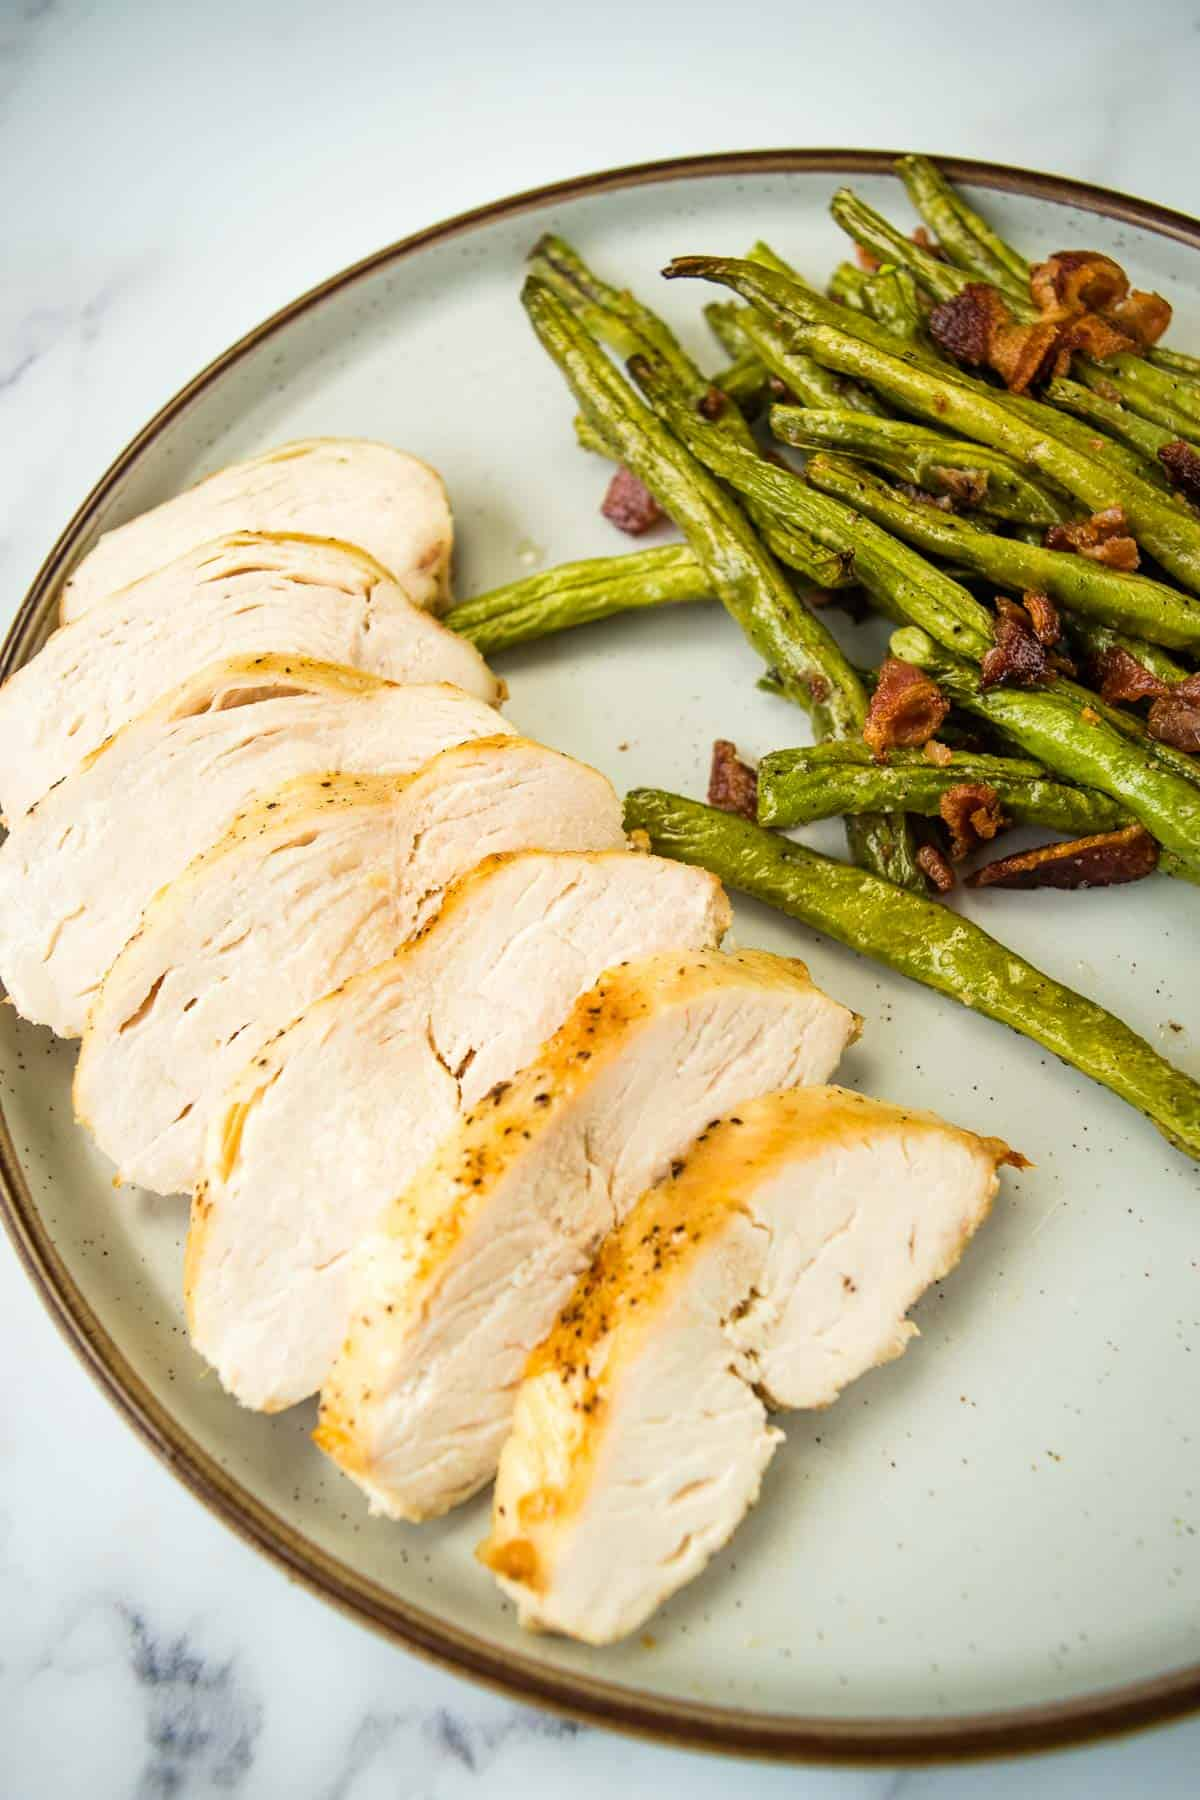 Sliced chicken breast with green beans.